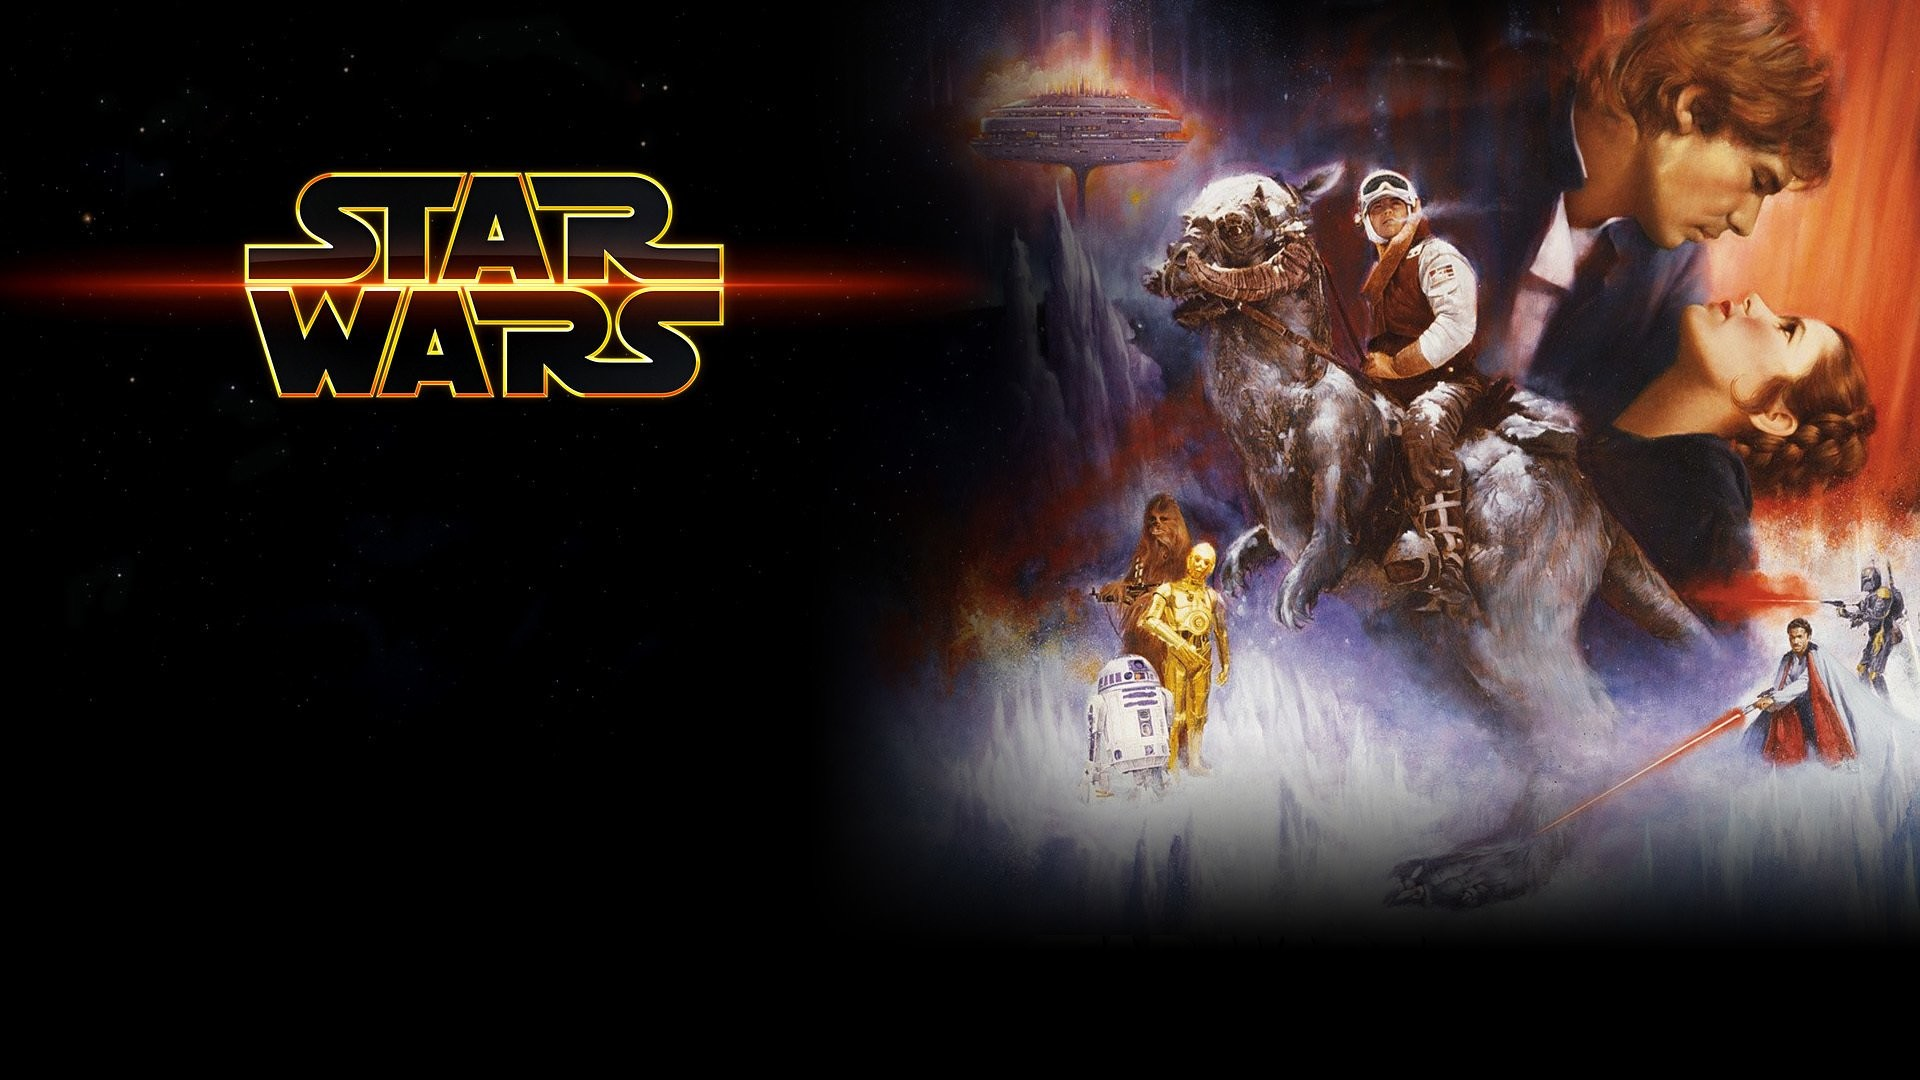 Star Wars Episode 4 Wallpaper 76 Images